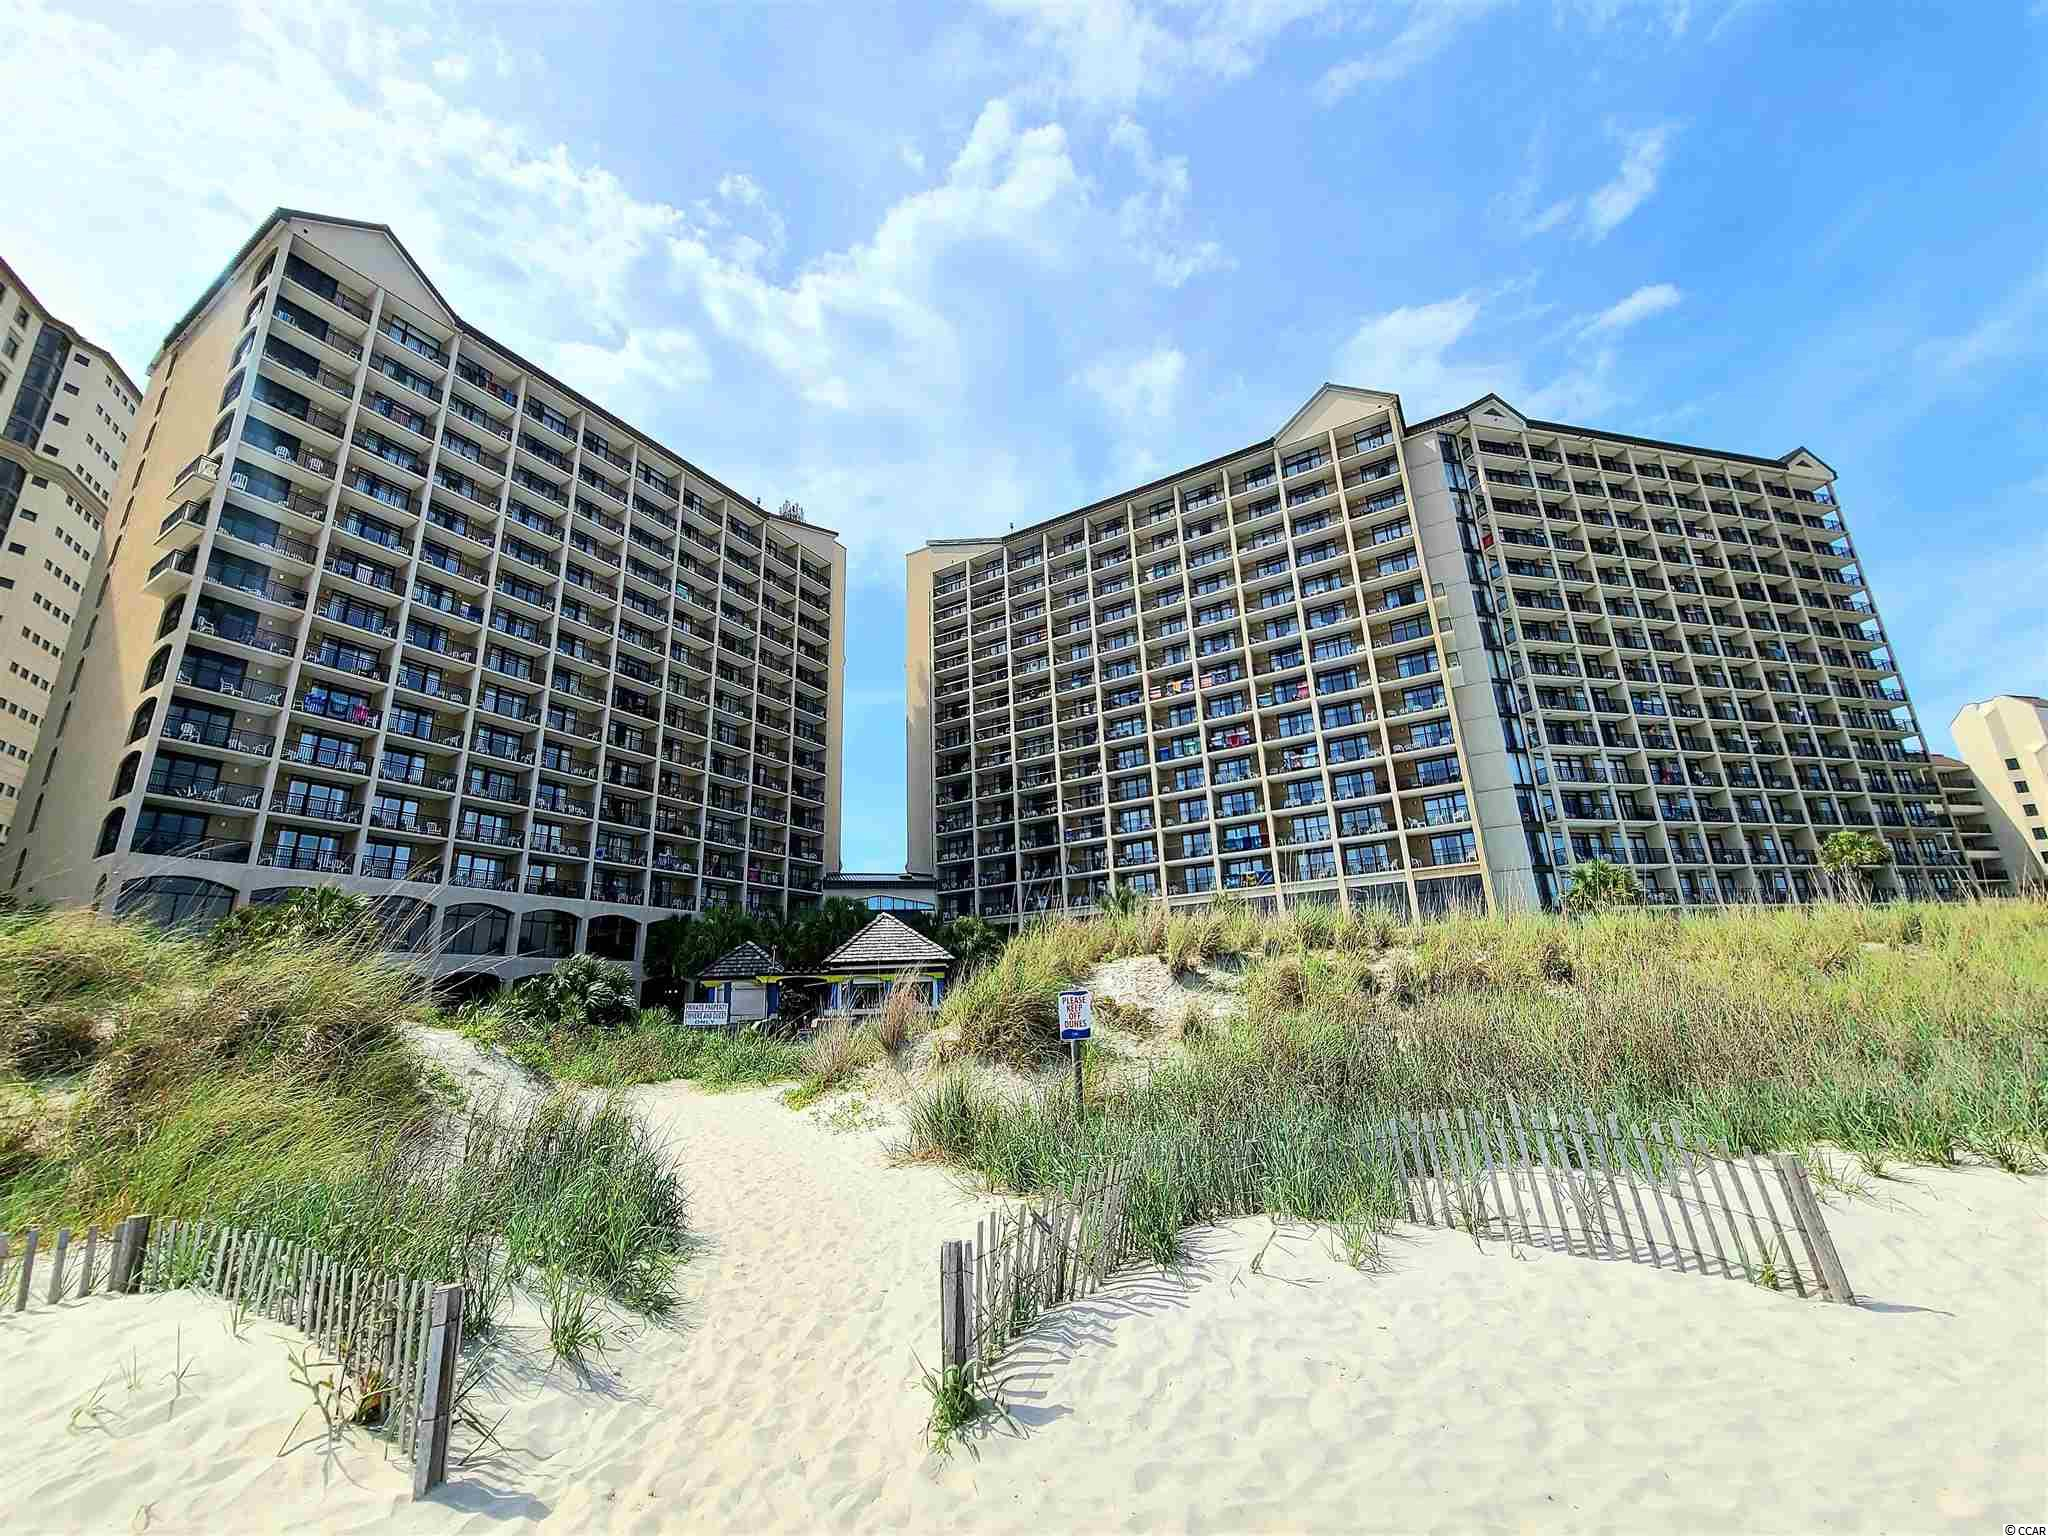 Immaculate 11th floor direct ocean front condo in the beautiful Beach Cove Resort. Fully upgraded unit. 2 Queen Beds & Sleeper Sofa sleeps 6. Large balcony overlooks the multiple pools with the Atlantic Ocean as the backdrop. Beach Cove Resort offers outdoor pools, an indoor pool, fitness center, restaurant, cafe, arcade area and more. Conveniently located near House of Blues, Alligator Adventure, Duplin Winery, Barefoot Landing, many dining choices, shopping and entertainment. A #1 choice in the area. Building is motorcycle friendly! Pet friendly for owners!